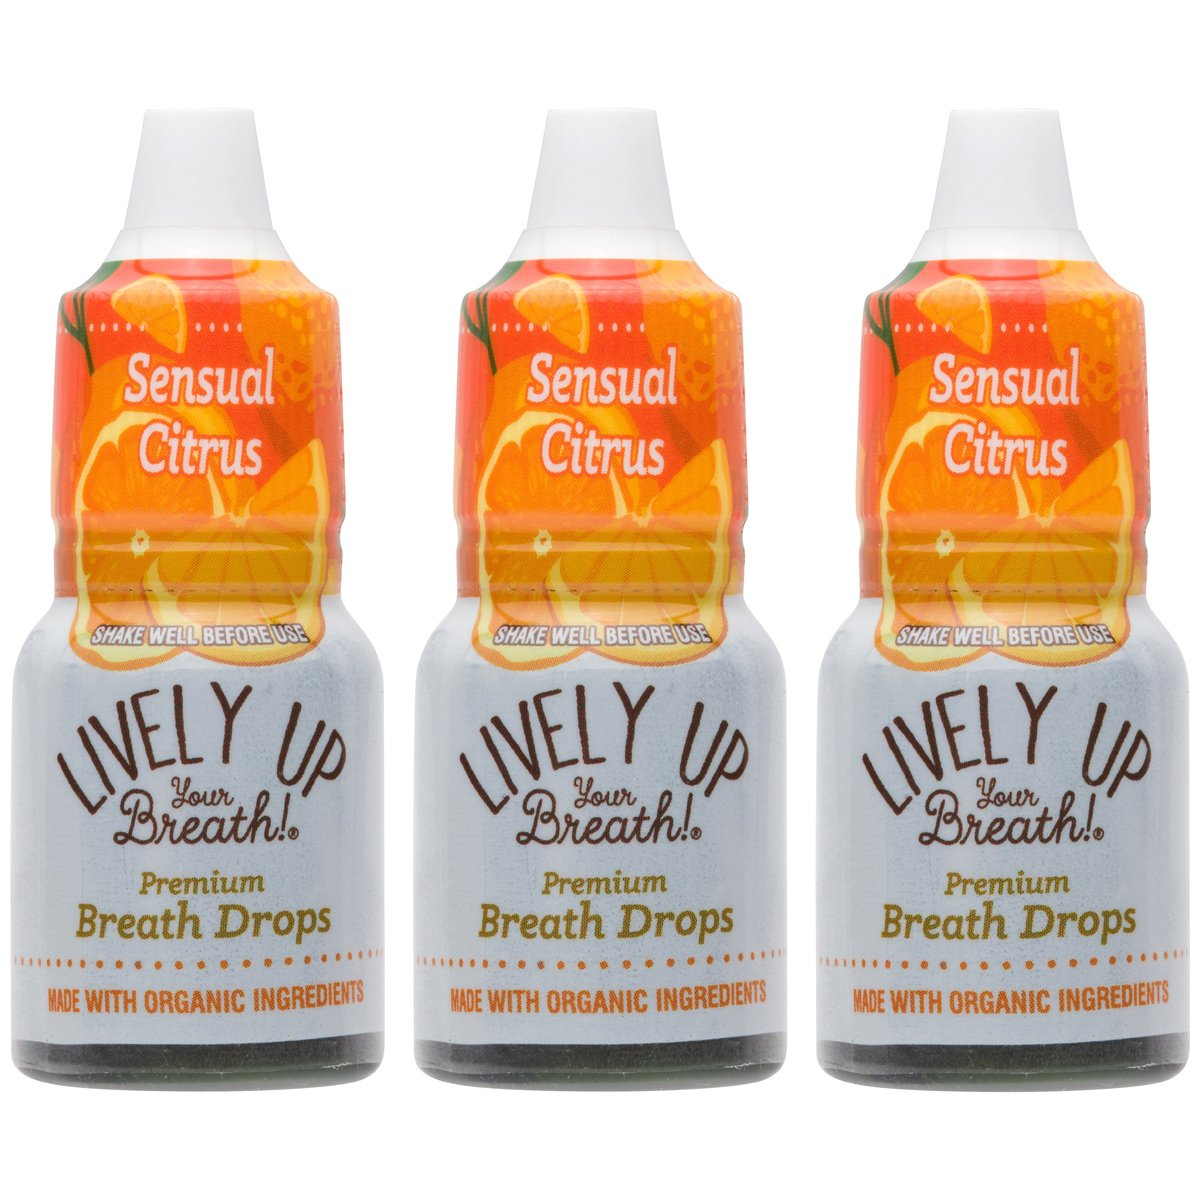 Lively Up Your Breath Premium Breath Freshener Liquid Drops with Organic Ingredients - Sensual Citrus 3 Pack